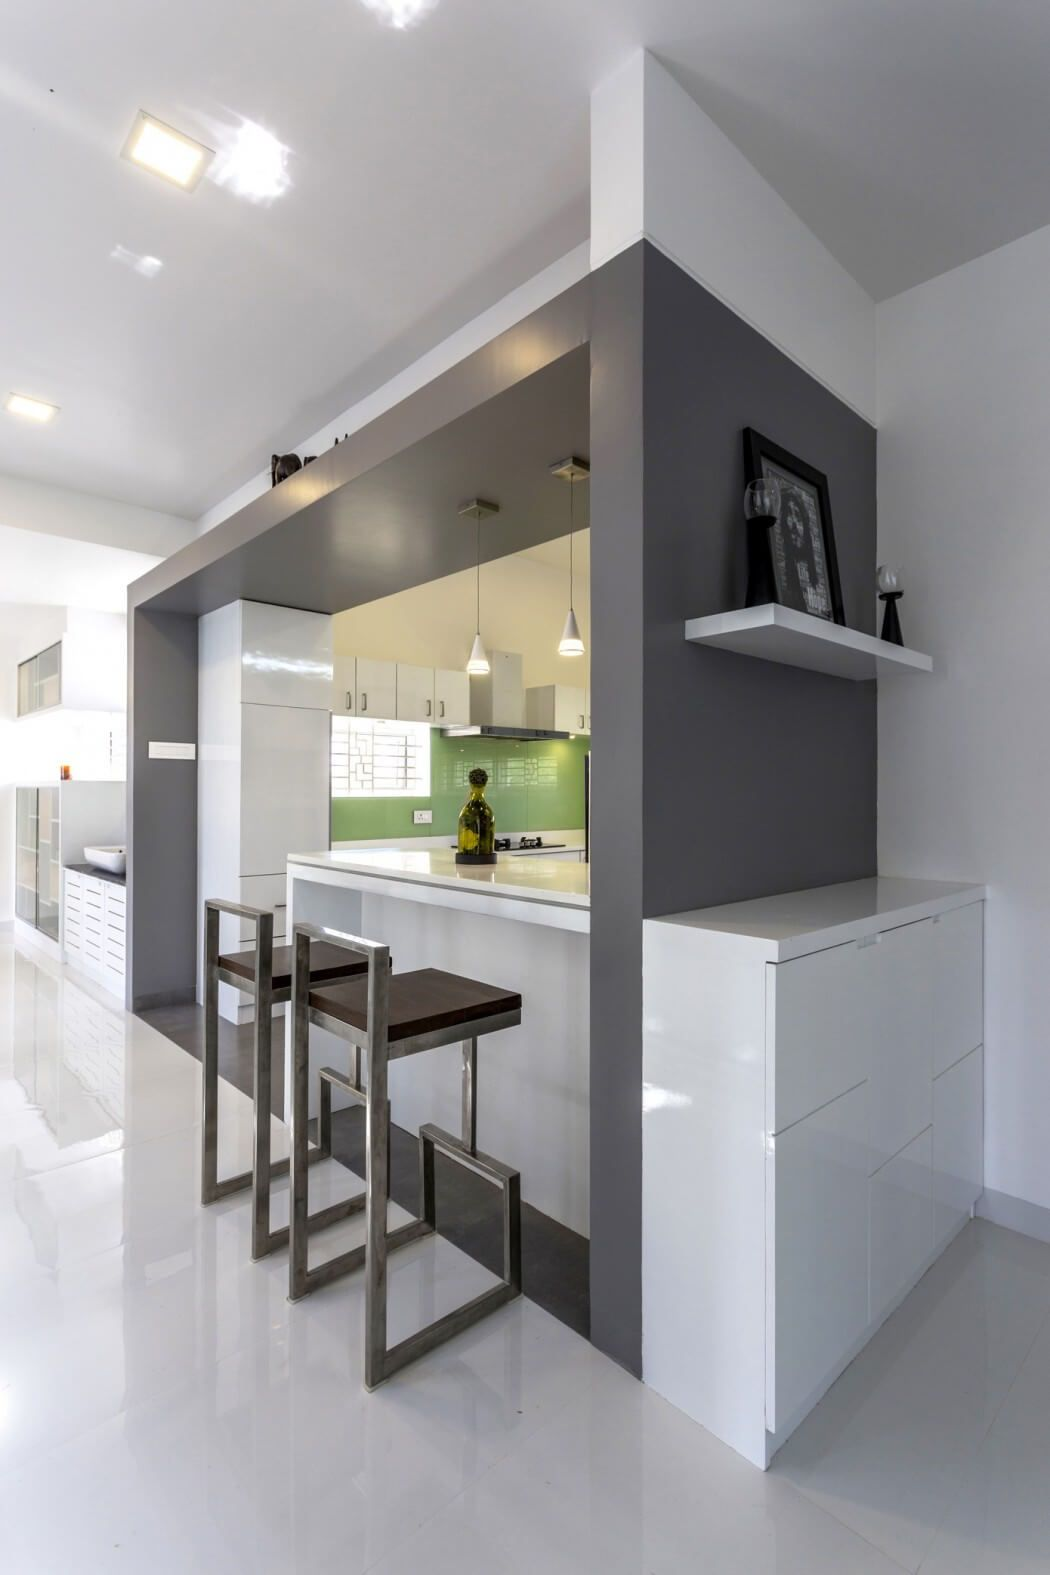 Narnia residence by jose anand kitchen room design modern home decor also winona house is  minimalist located in rh pinterest